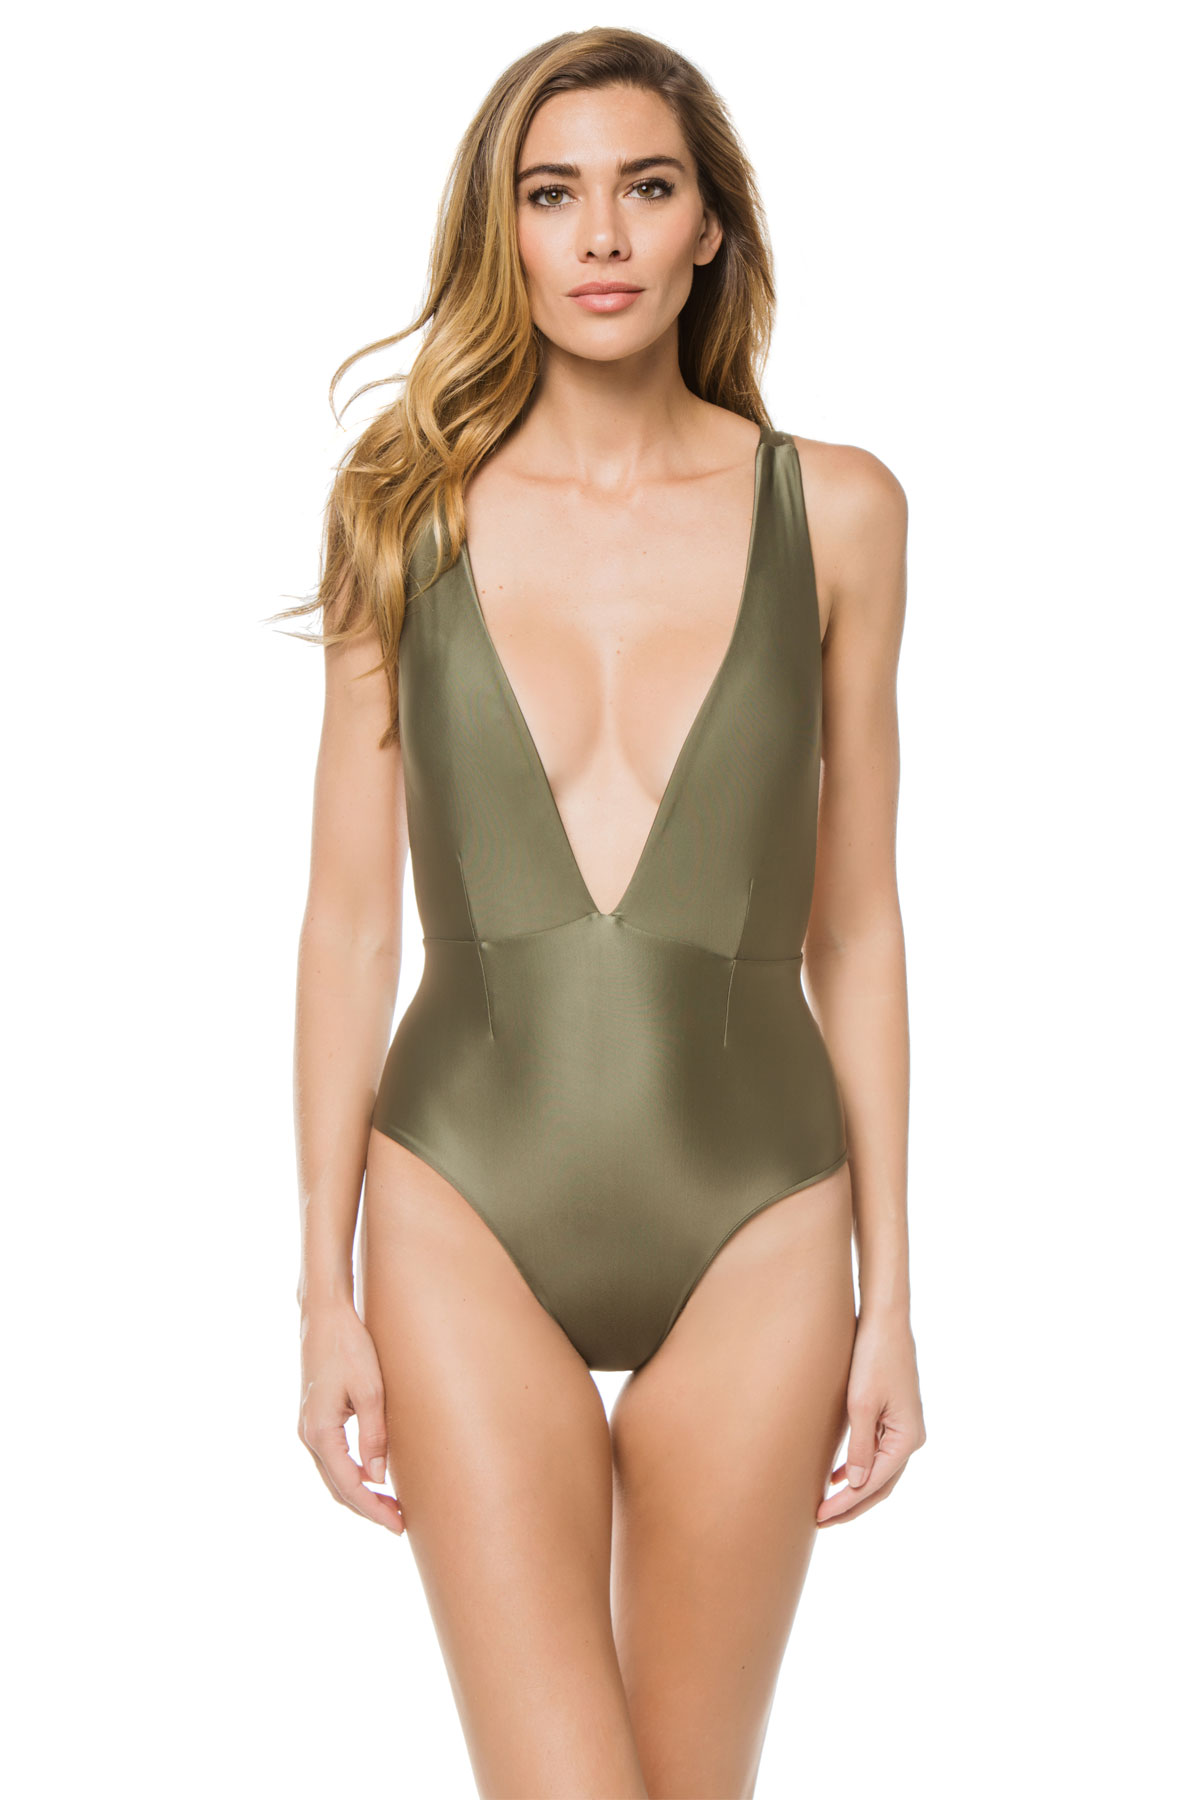 Marina Plunge Over The Shoulder One Piece Swimsuit - Cedar Green